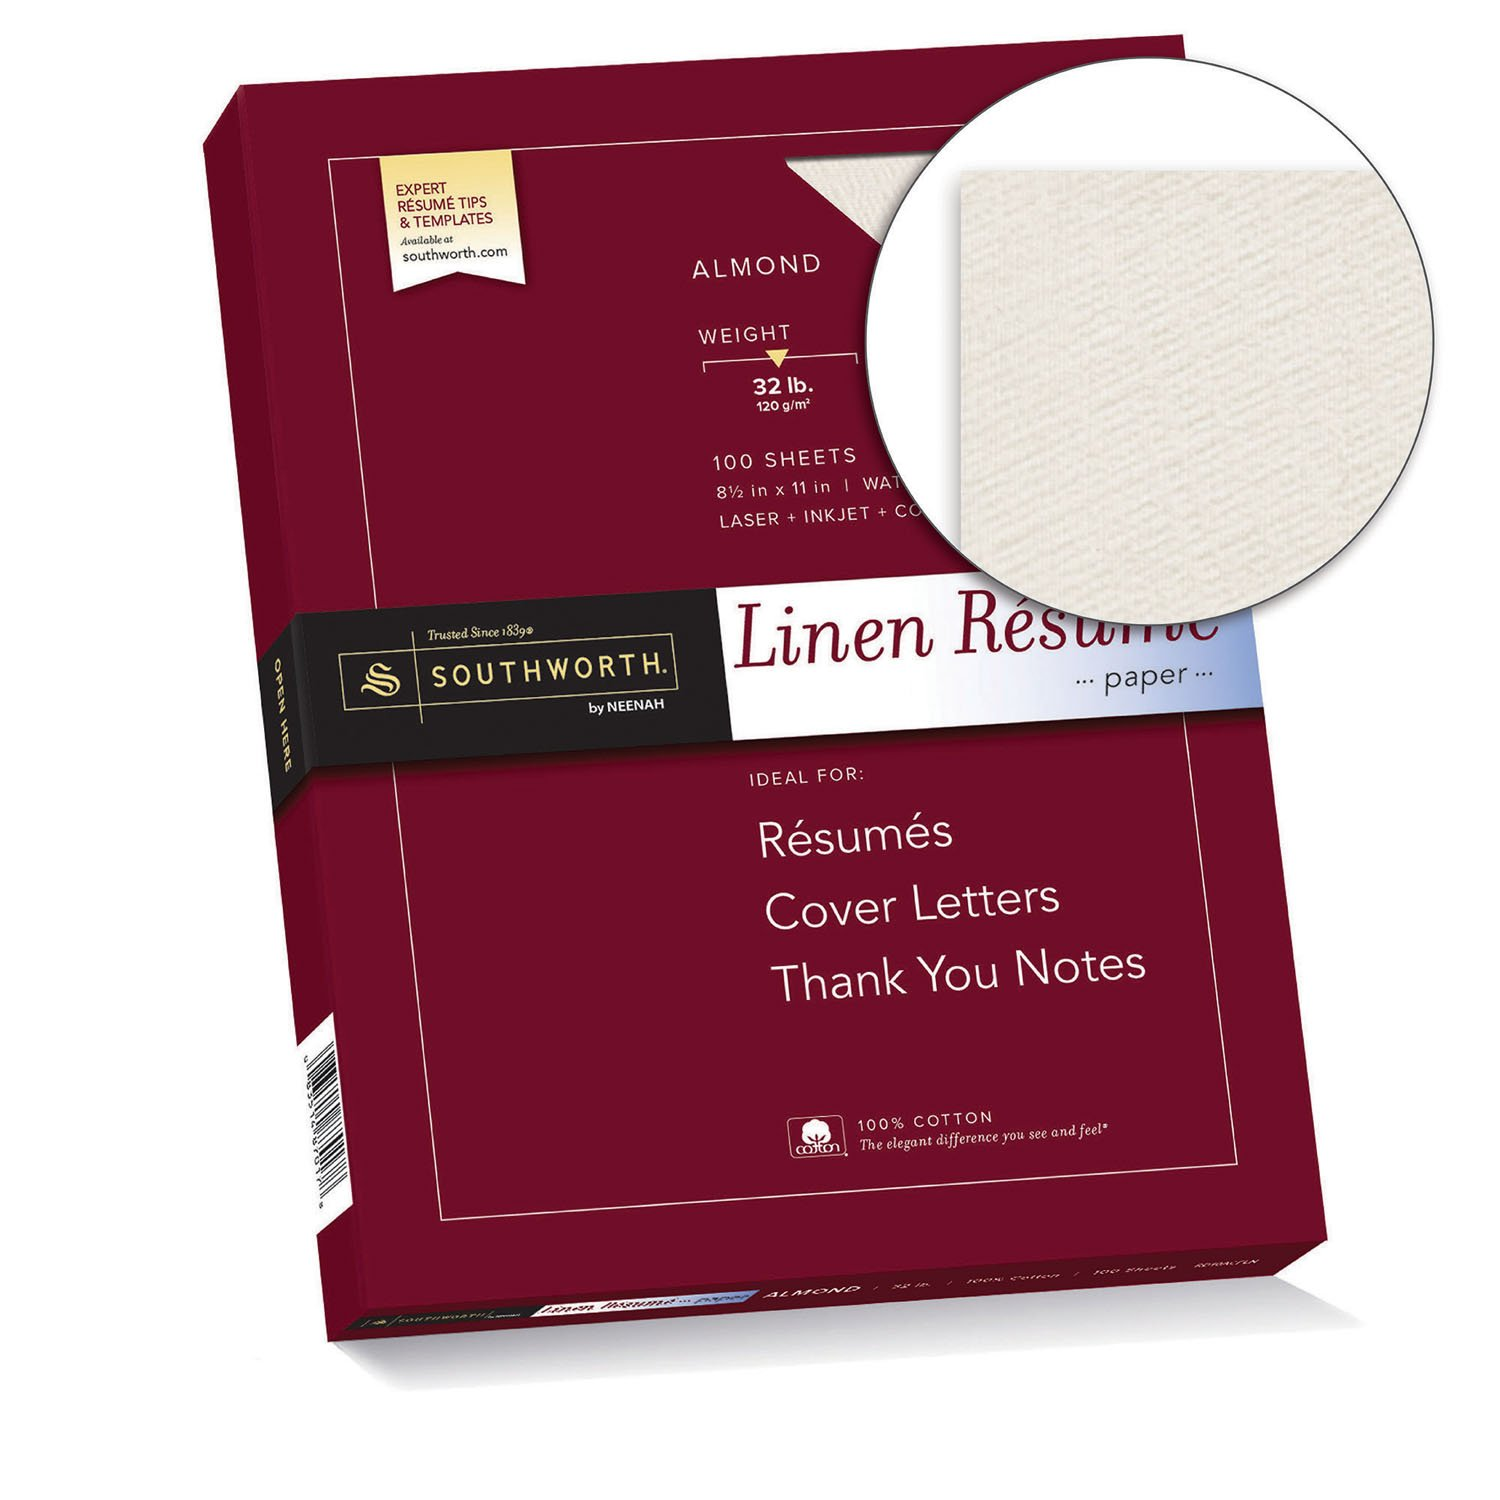 Amazon Com Southworth Linen Resume Paper Almond 32 Pounds 100